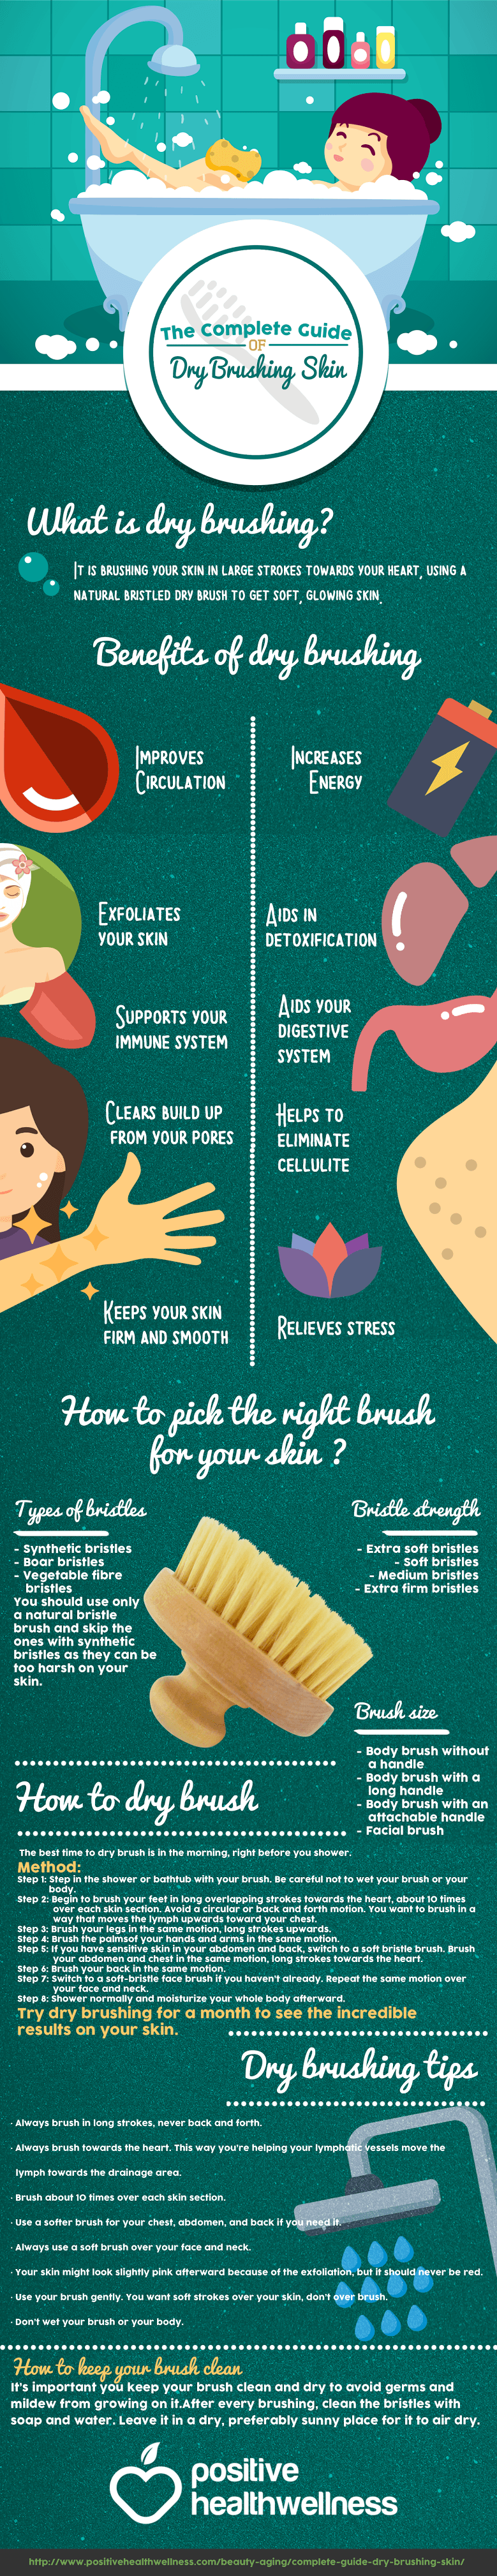 The Complete Guide To Dry Brushing